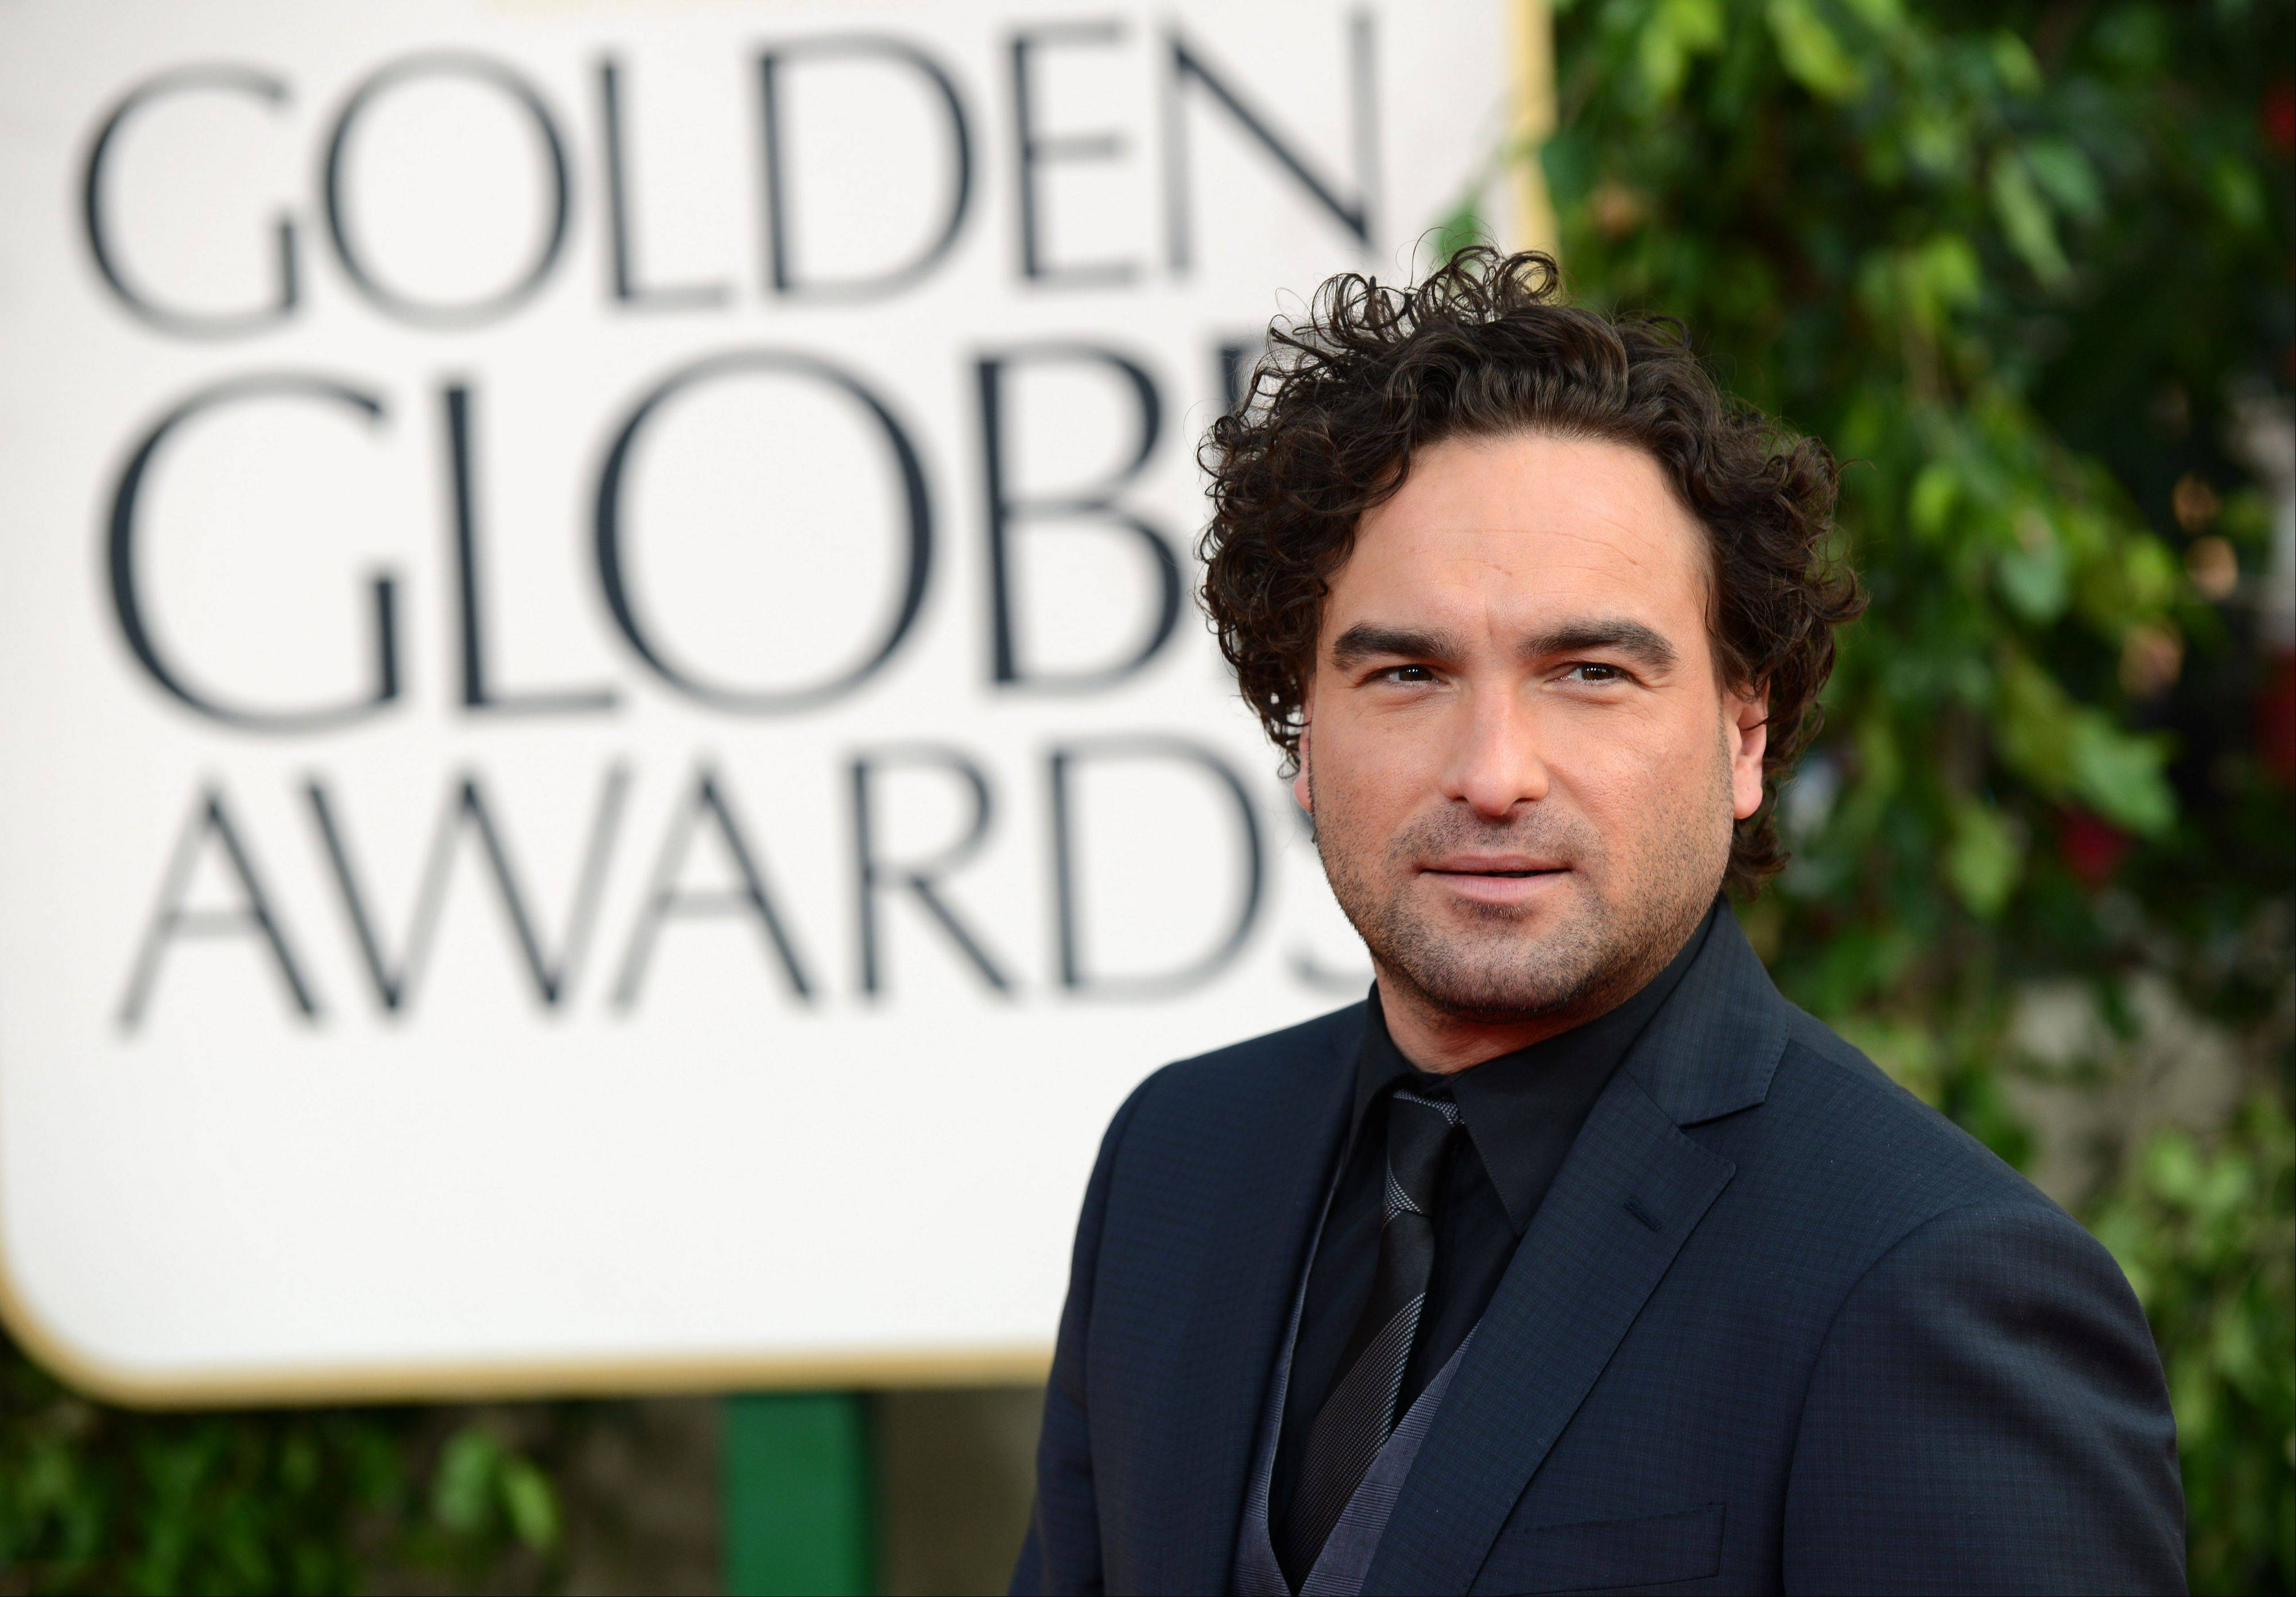 """The Big Bang Theory"" actor Johnny Galecki arrives at the 70th Annual Golden Globe Awards at the Beverly Hilton Hotel on Sunday Jan. 13, 2013, in Beverly Hills, Calif."